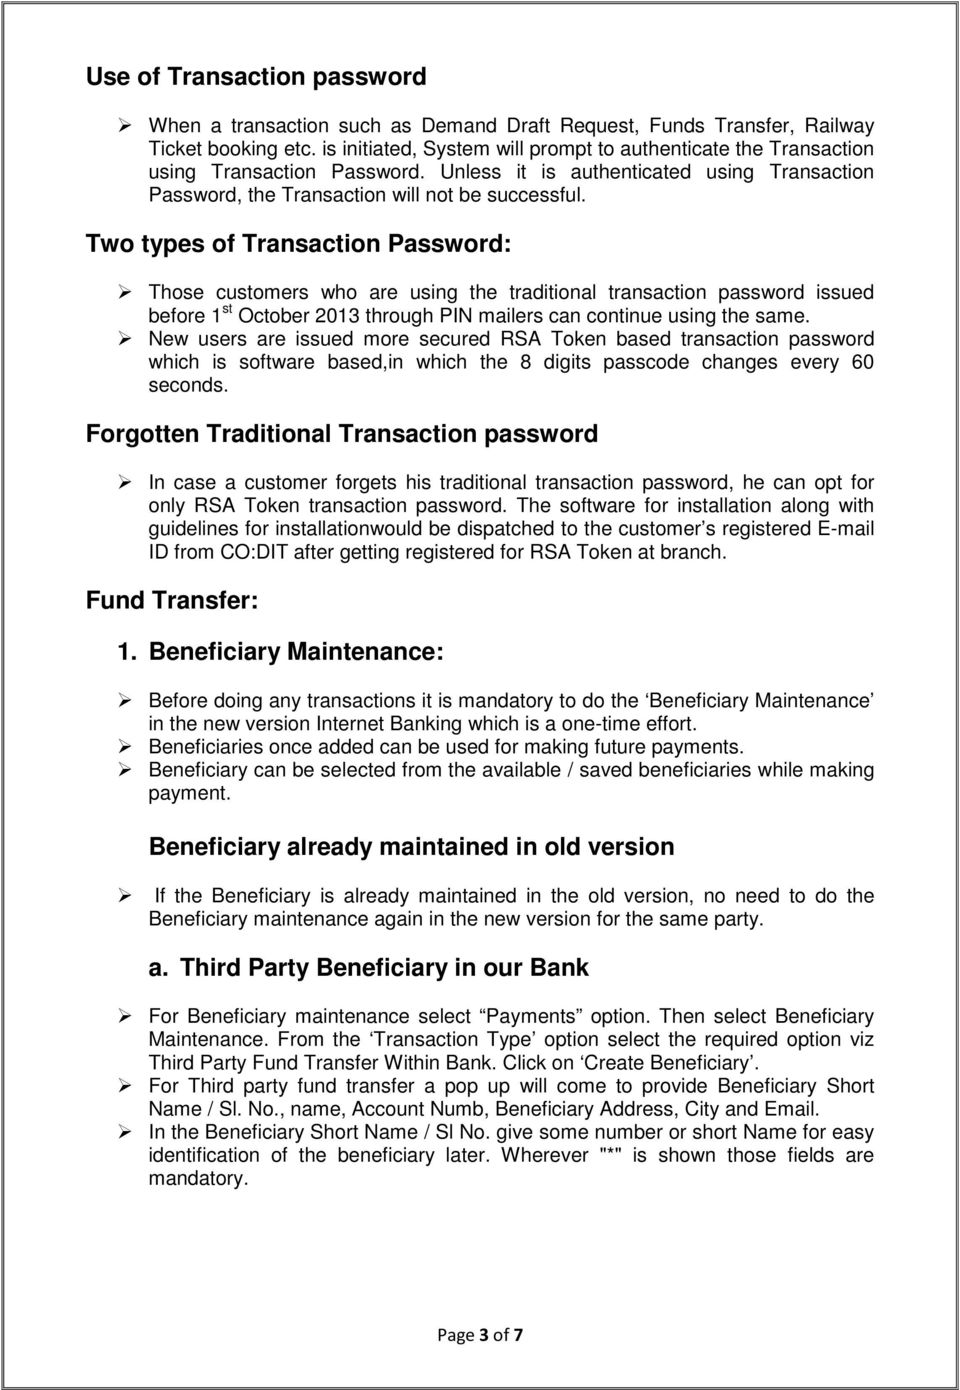 Two types of Transaction Password: Those customers who are using the traditional transaction password issued before 1 st October 2013 through PIN mailers can continue using the same.